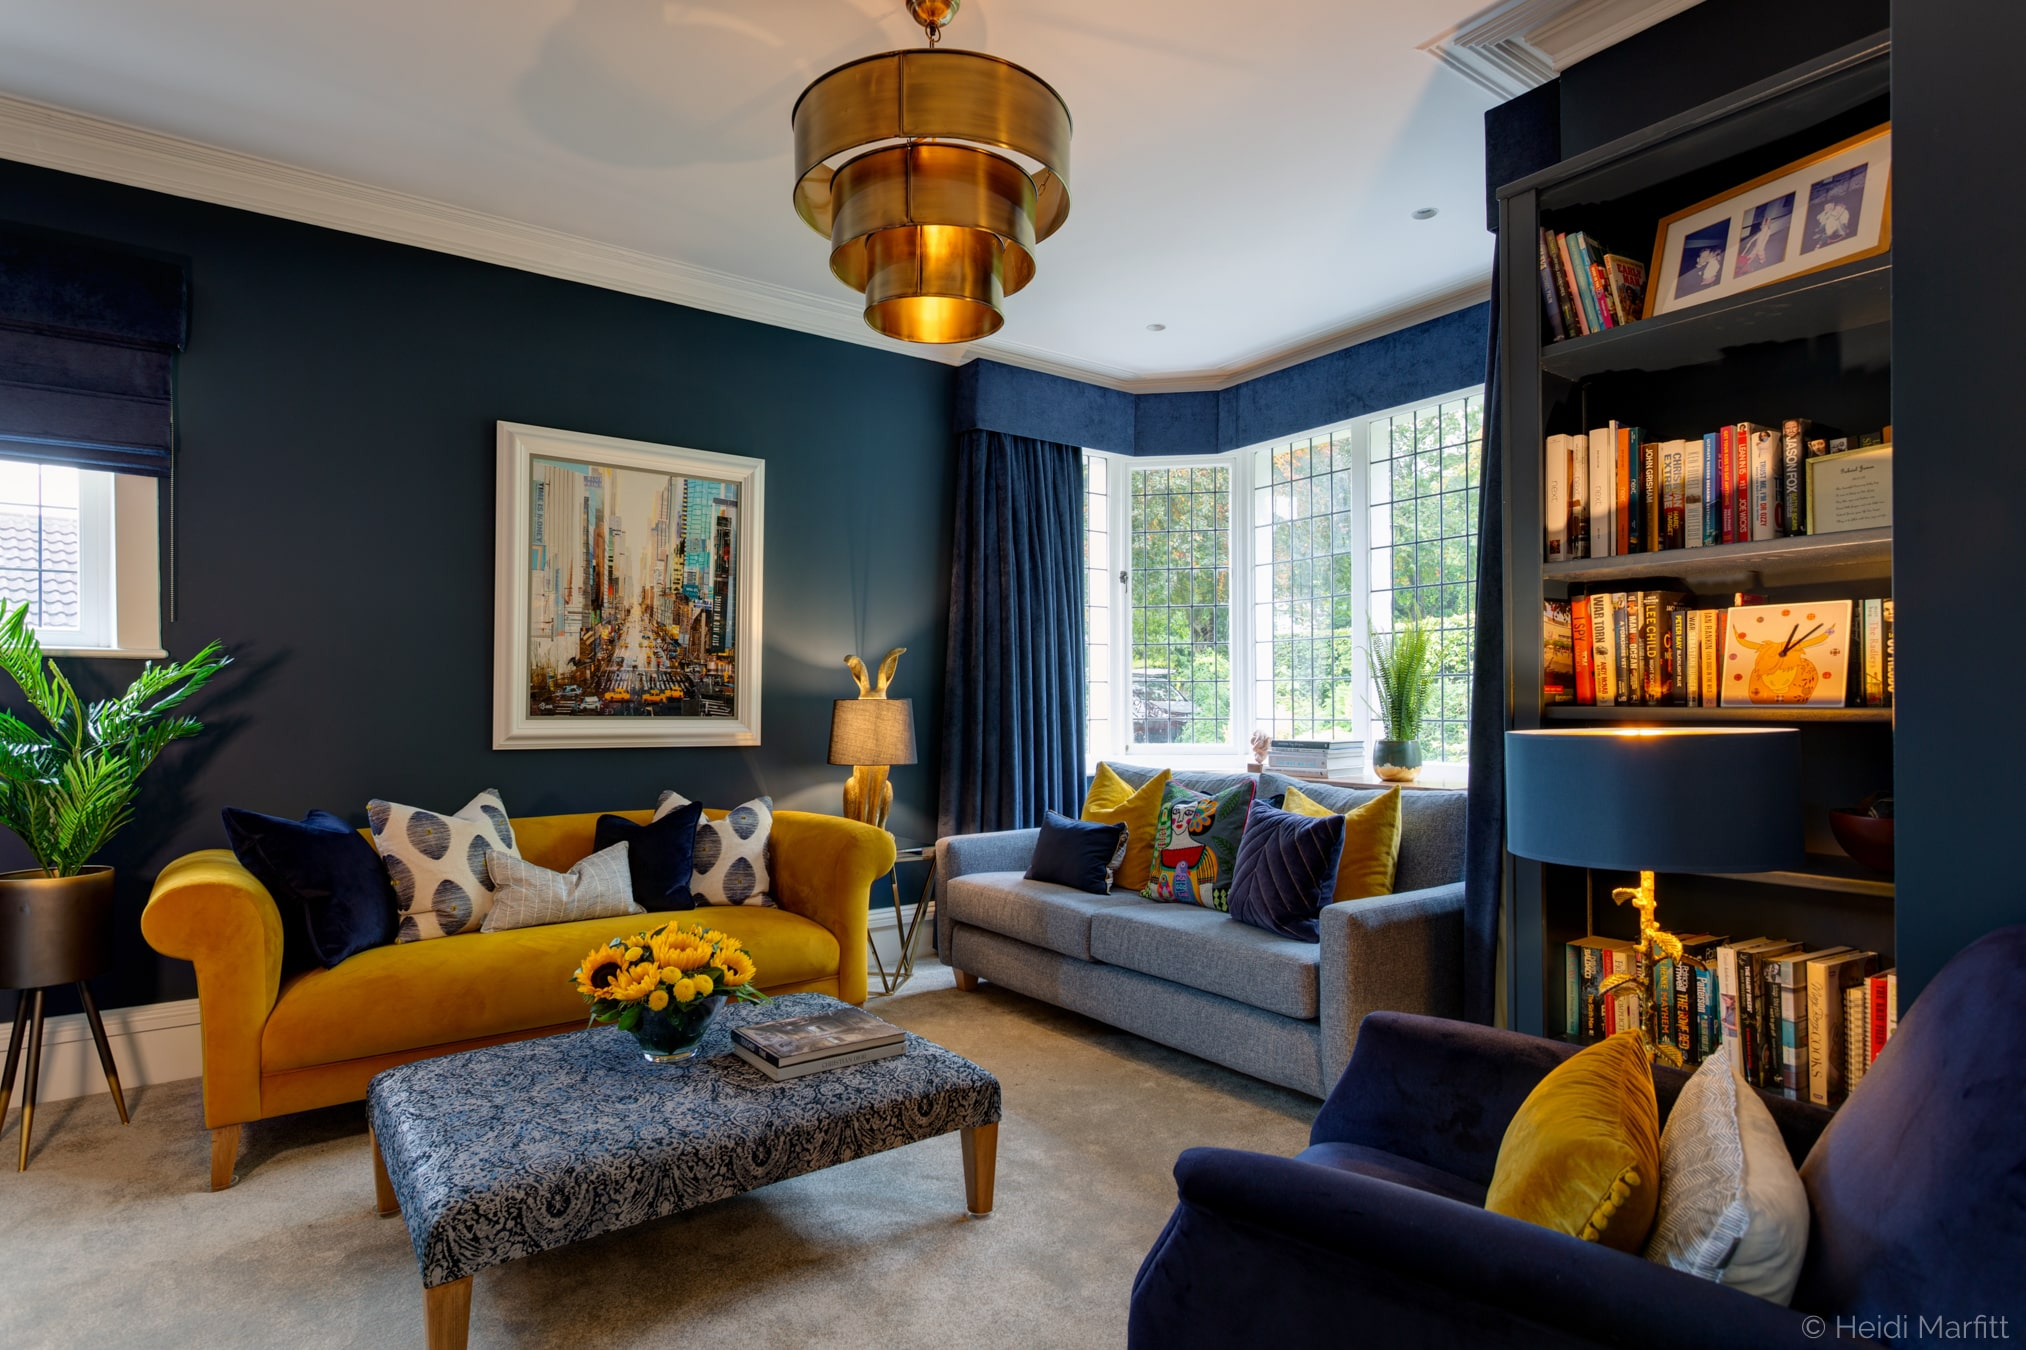 Bespoke bookshelves mean that this cosy sitting room can house the family's treasures